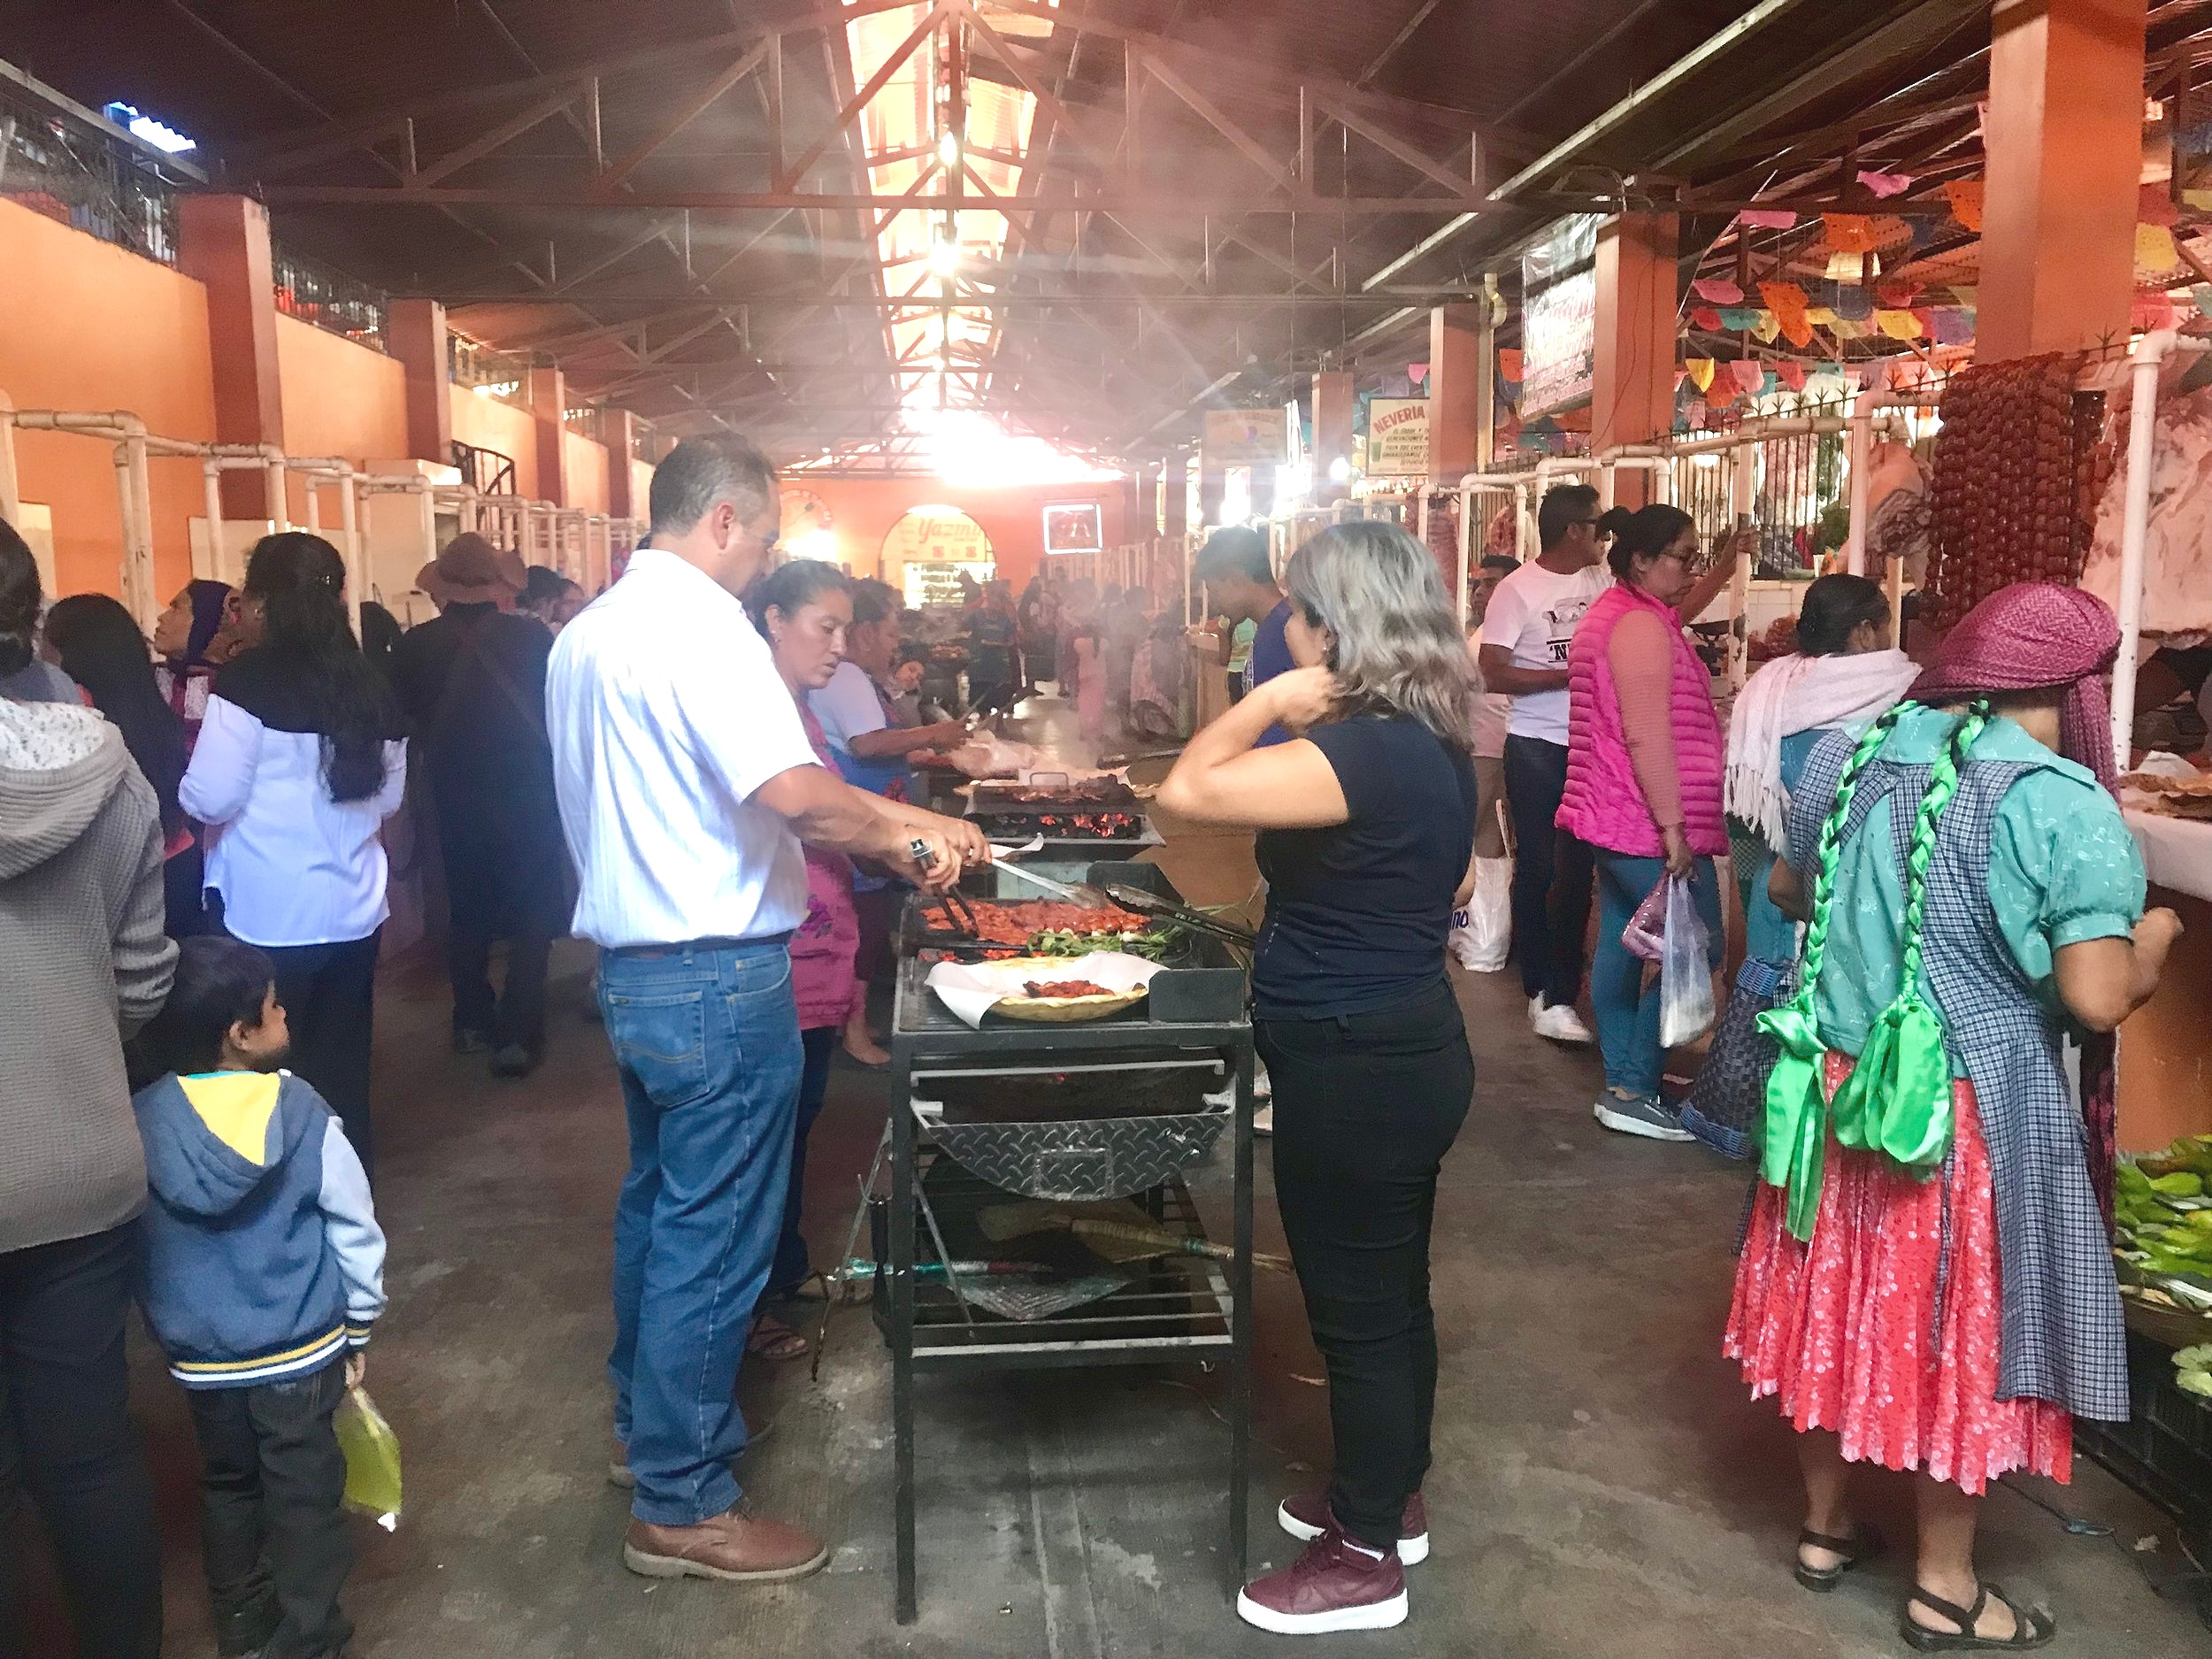 I admit I love her ribboned braids (right), although they were a common sight in this very Indian market outside of the city of Oaxaca with people cooking meat on open flames in the middle.